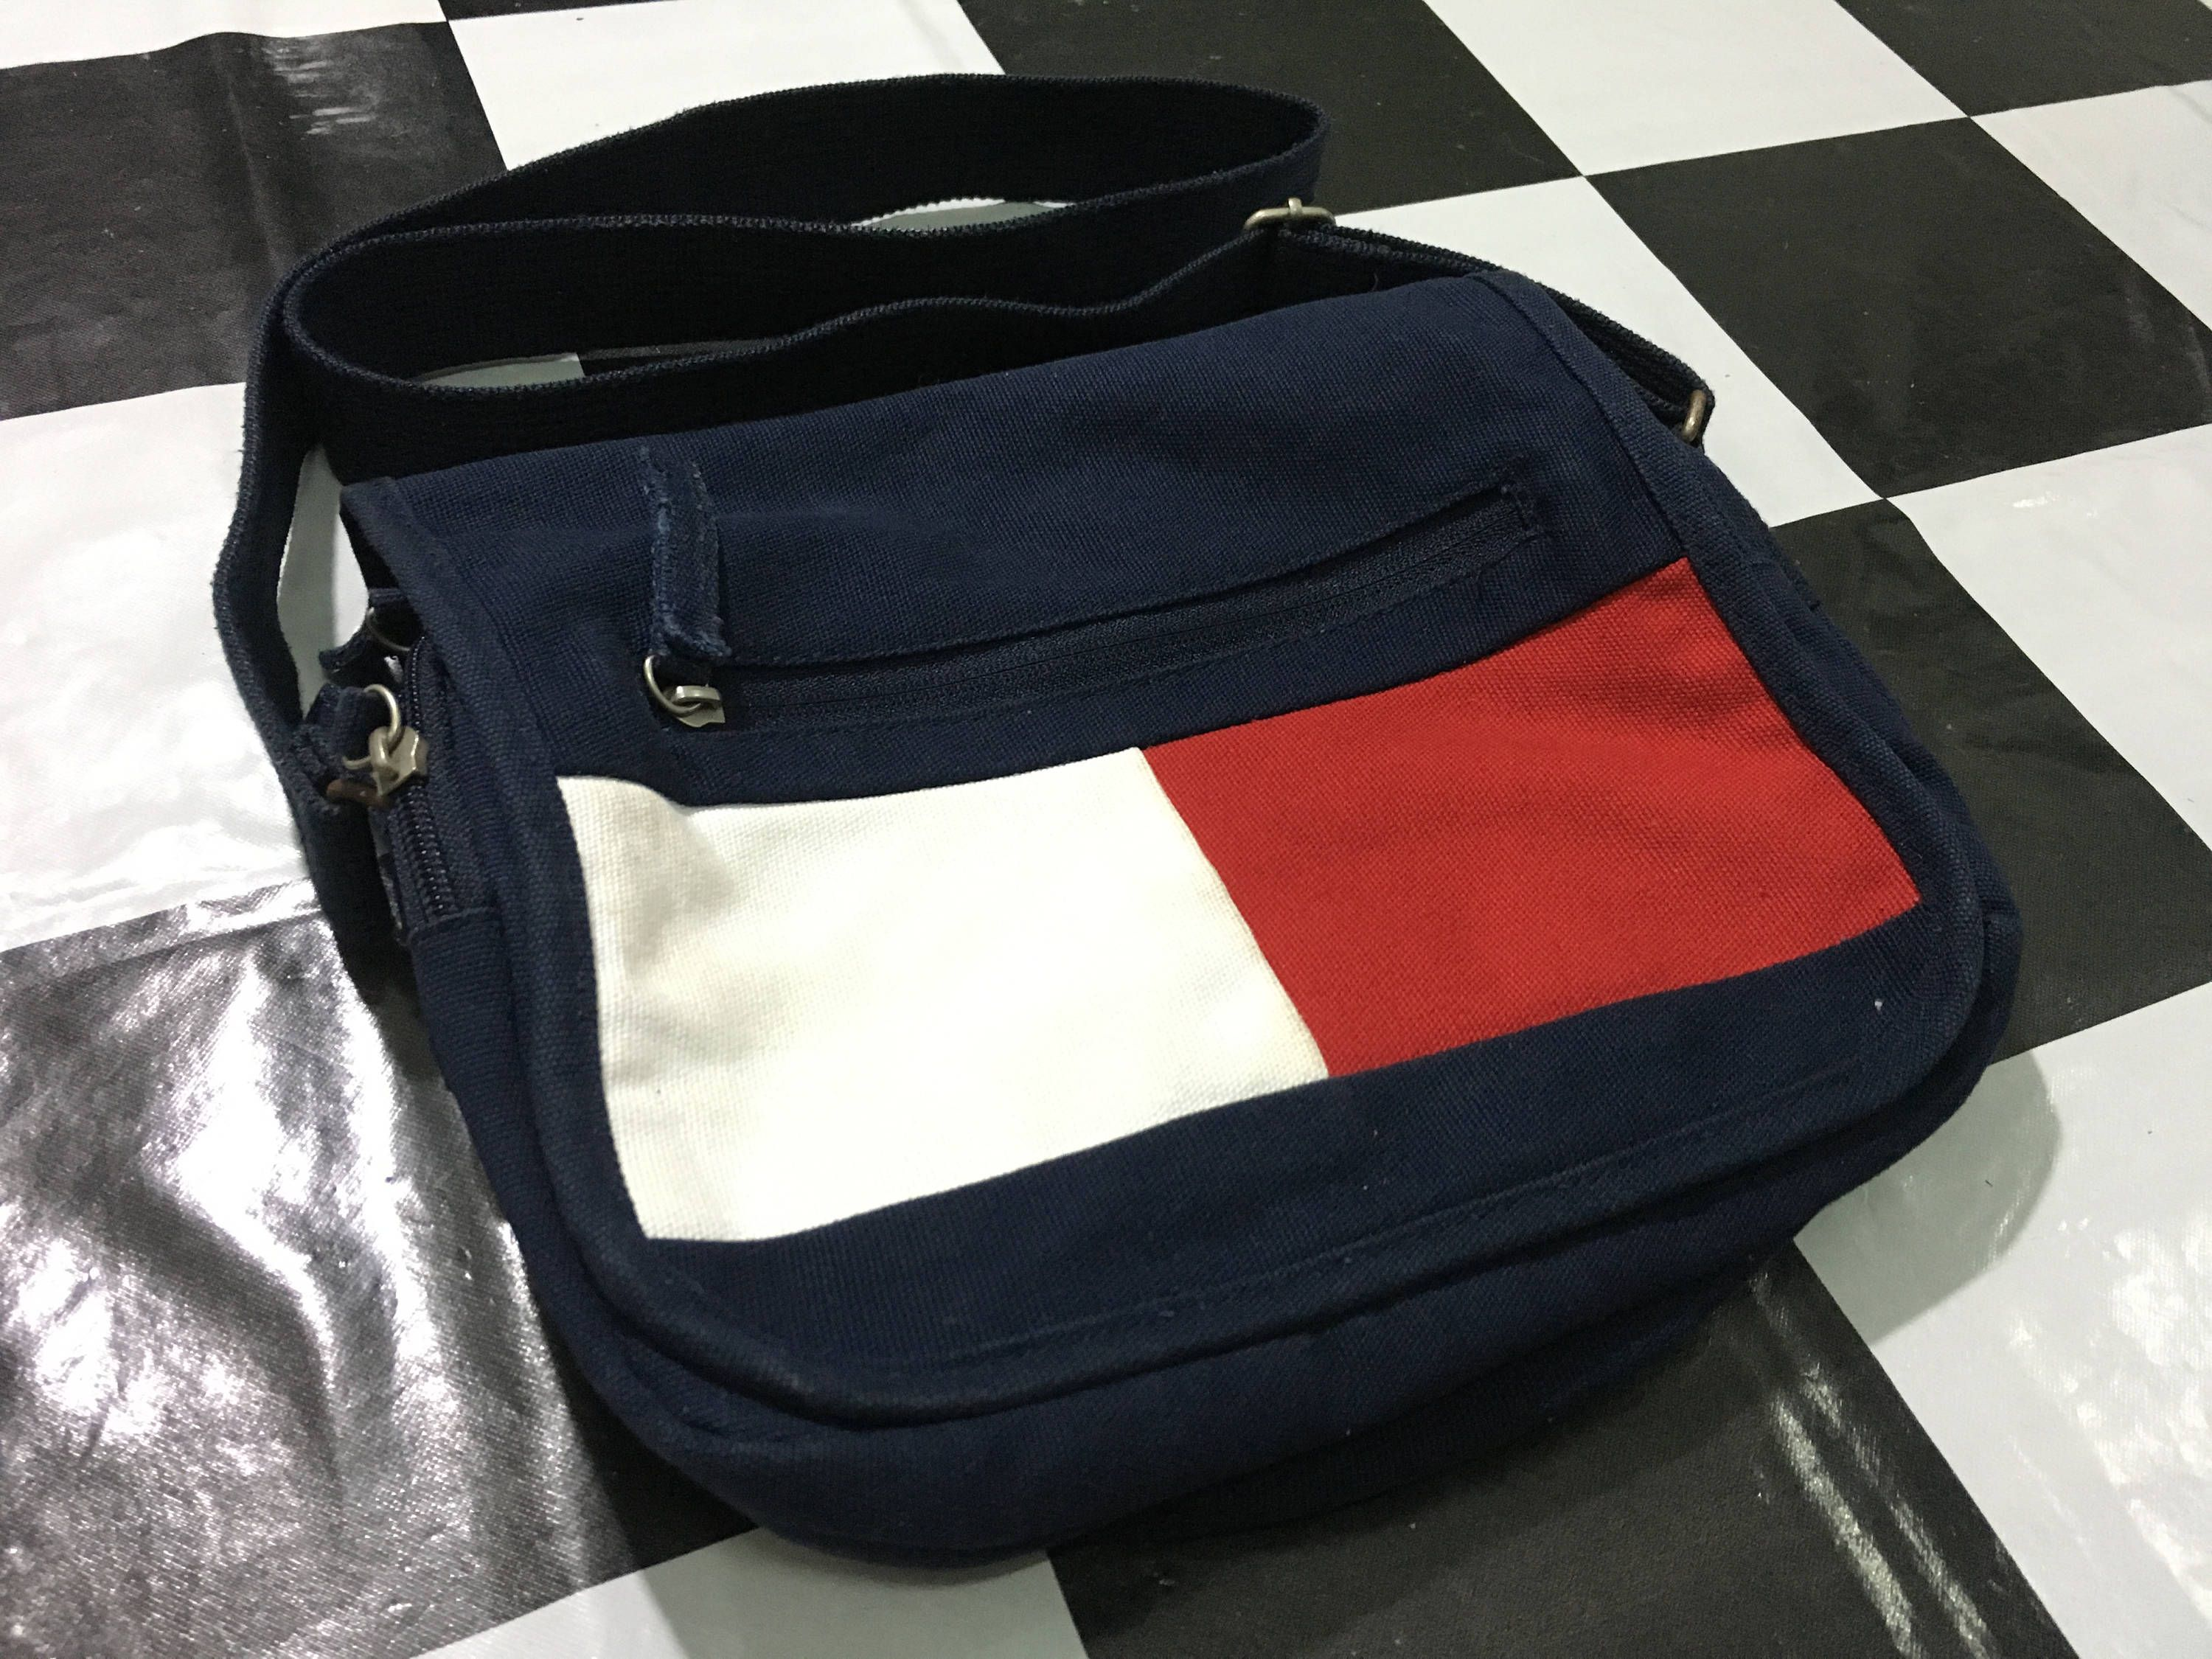 fde74b0ebe Vintage Tommy jeans bag tommy hilfiger flag logo color block crossbody bag  Excellent condition by AlivevintageShop